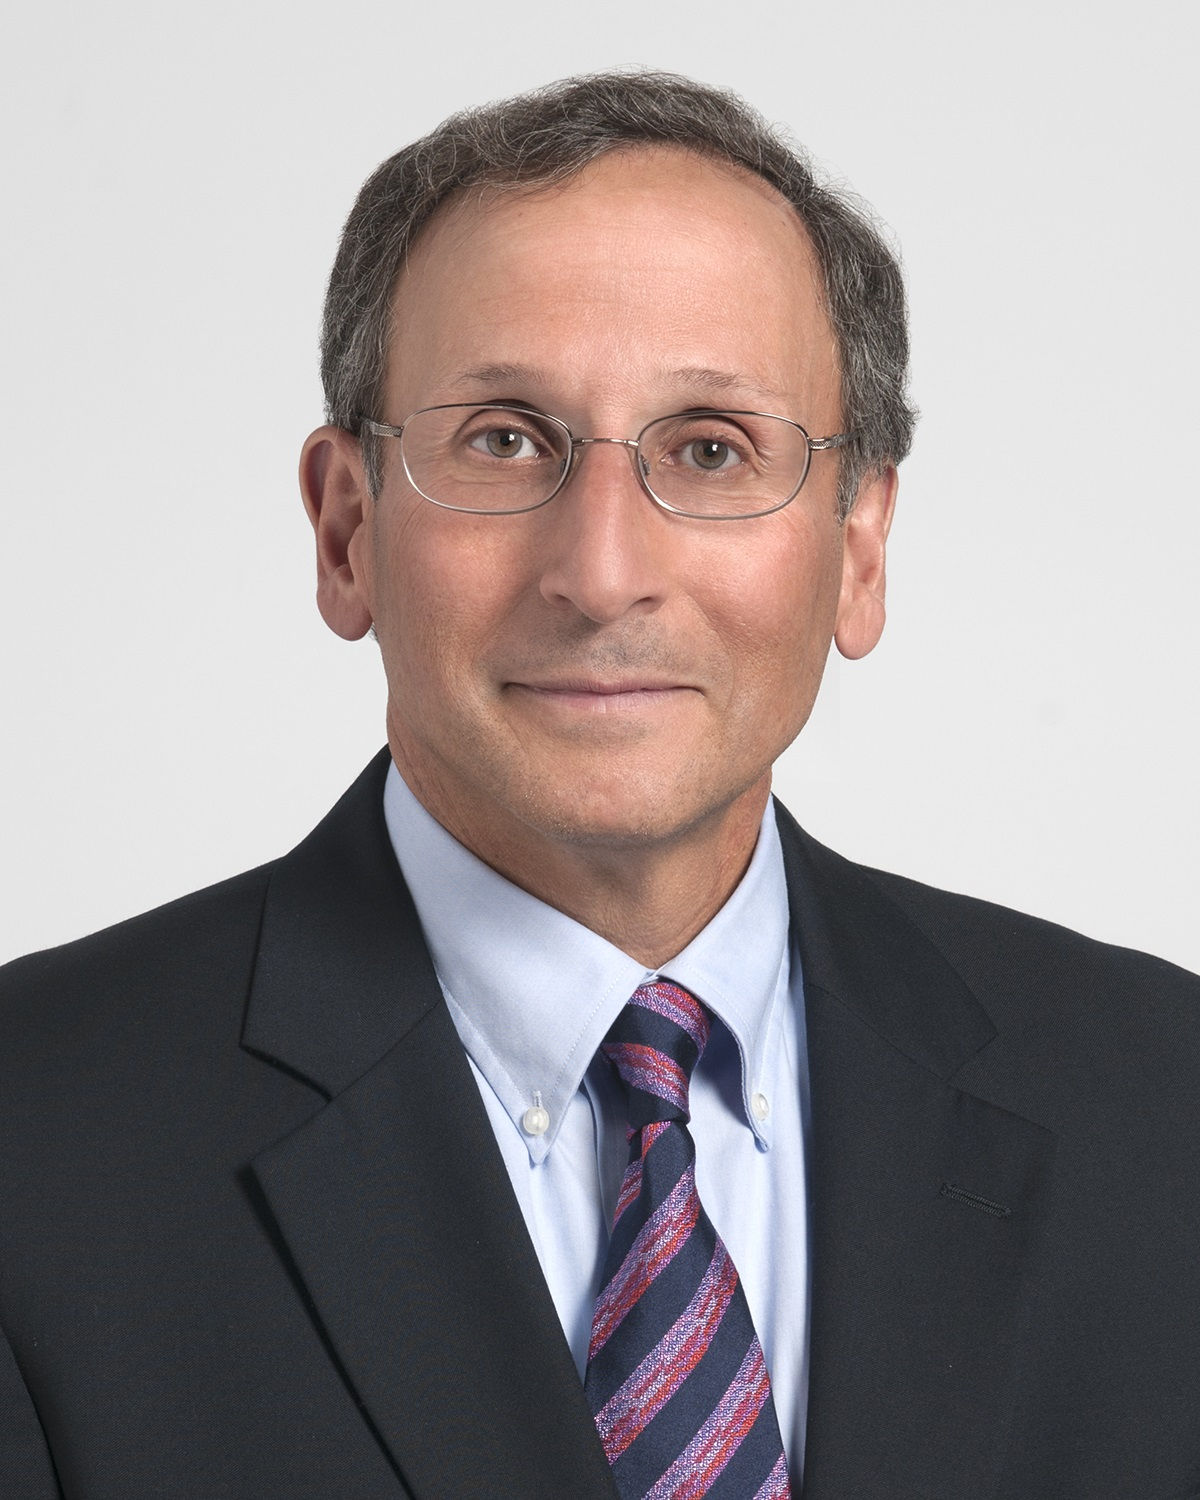 Photo of Paul DiCorleto - photo credit: Cleveland Clinic